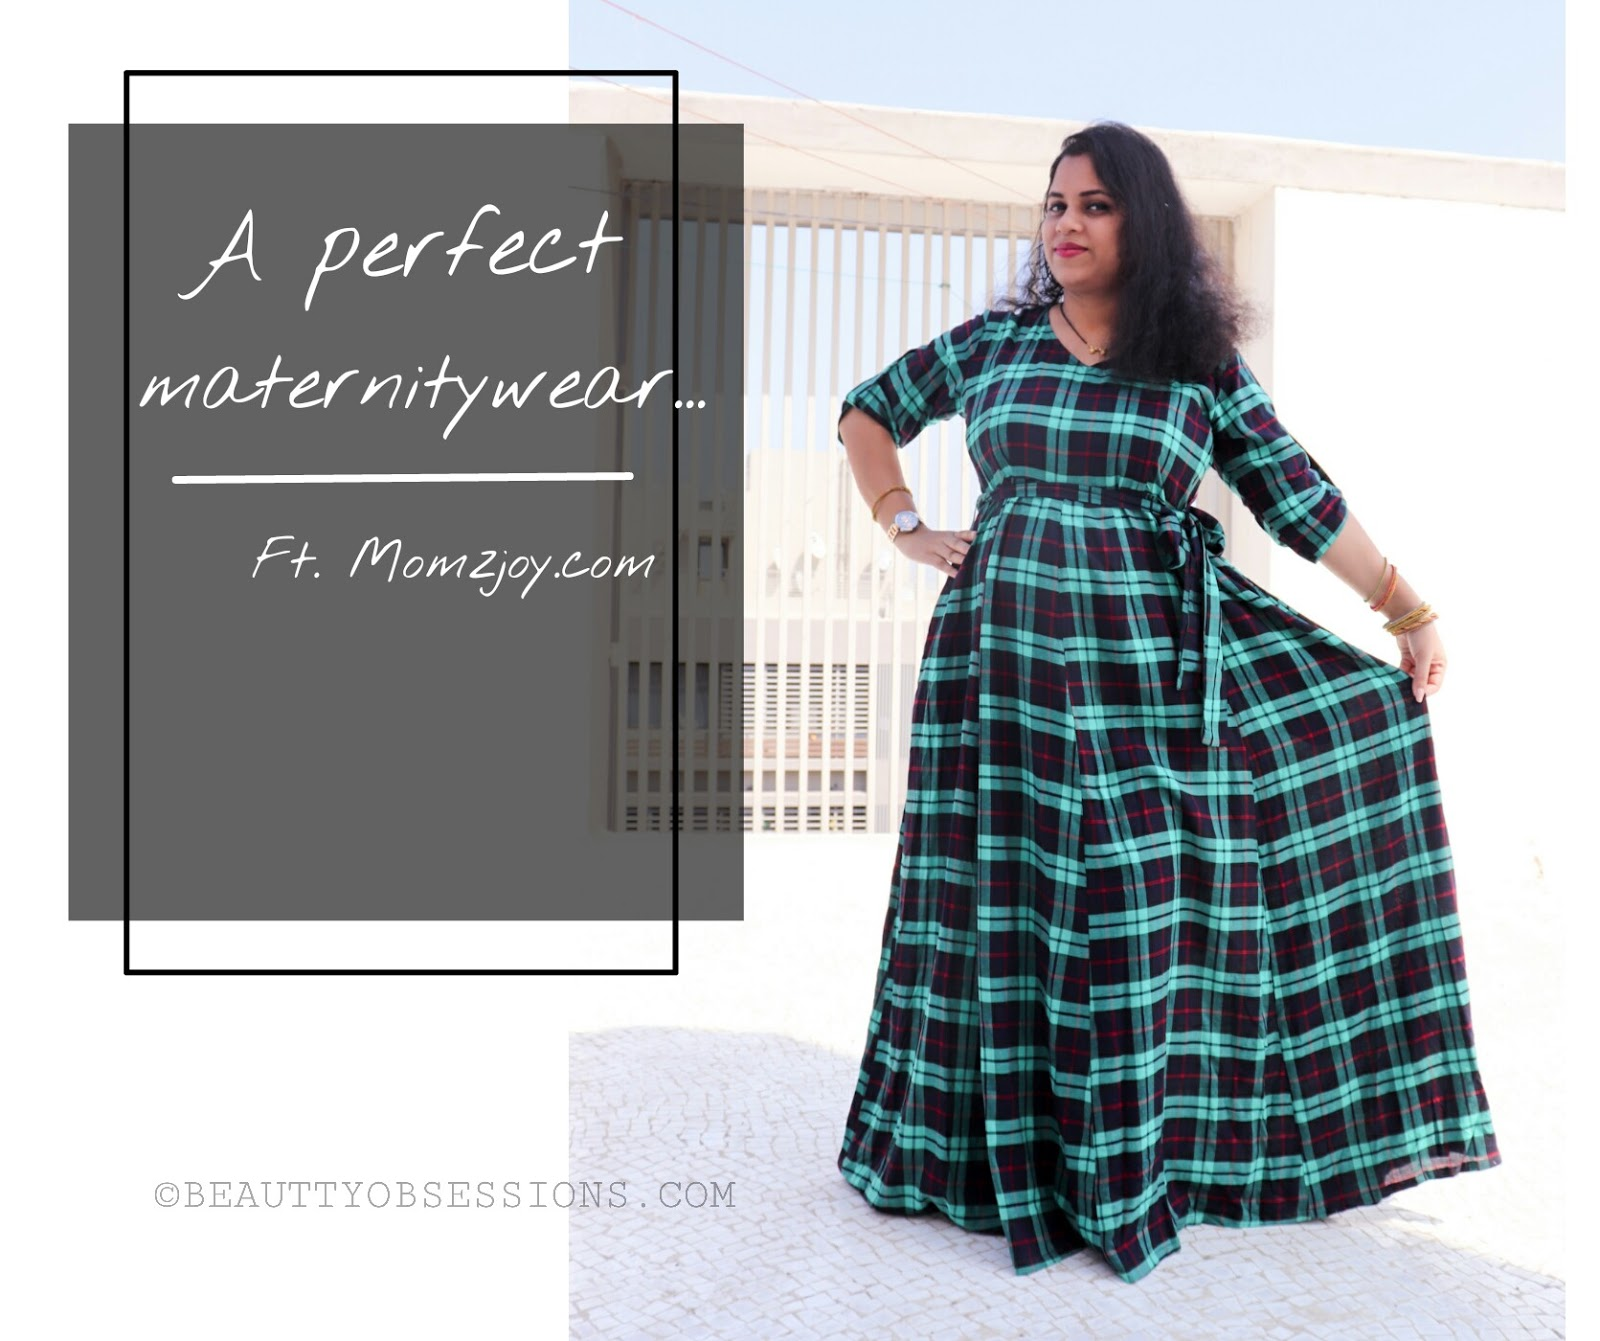 25827bb0e0 The Perfect Maternity wear... | Ft. Momzjoy.com - Beauty Obsessions